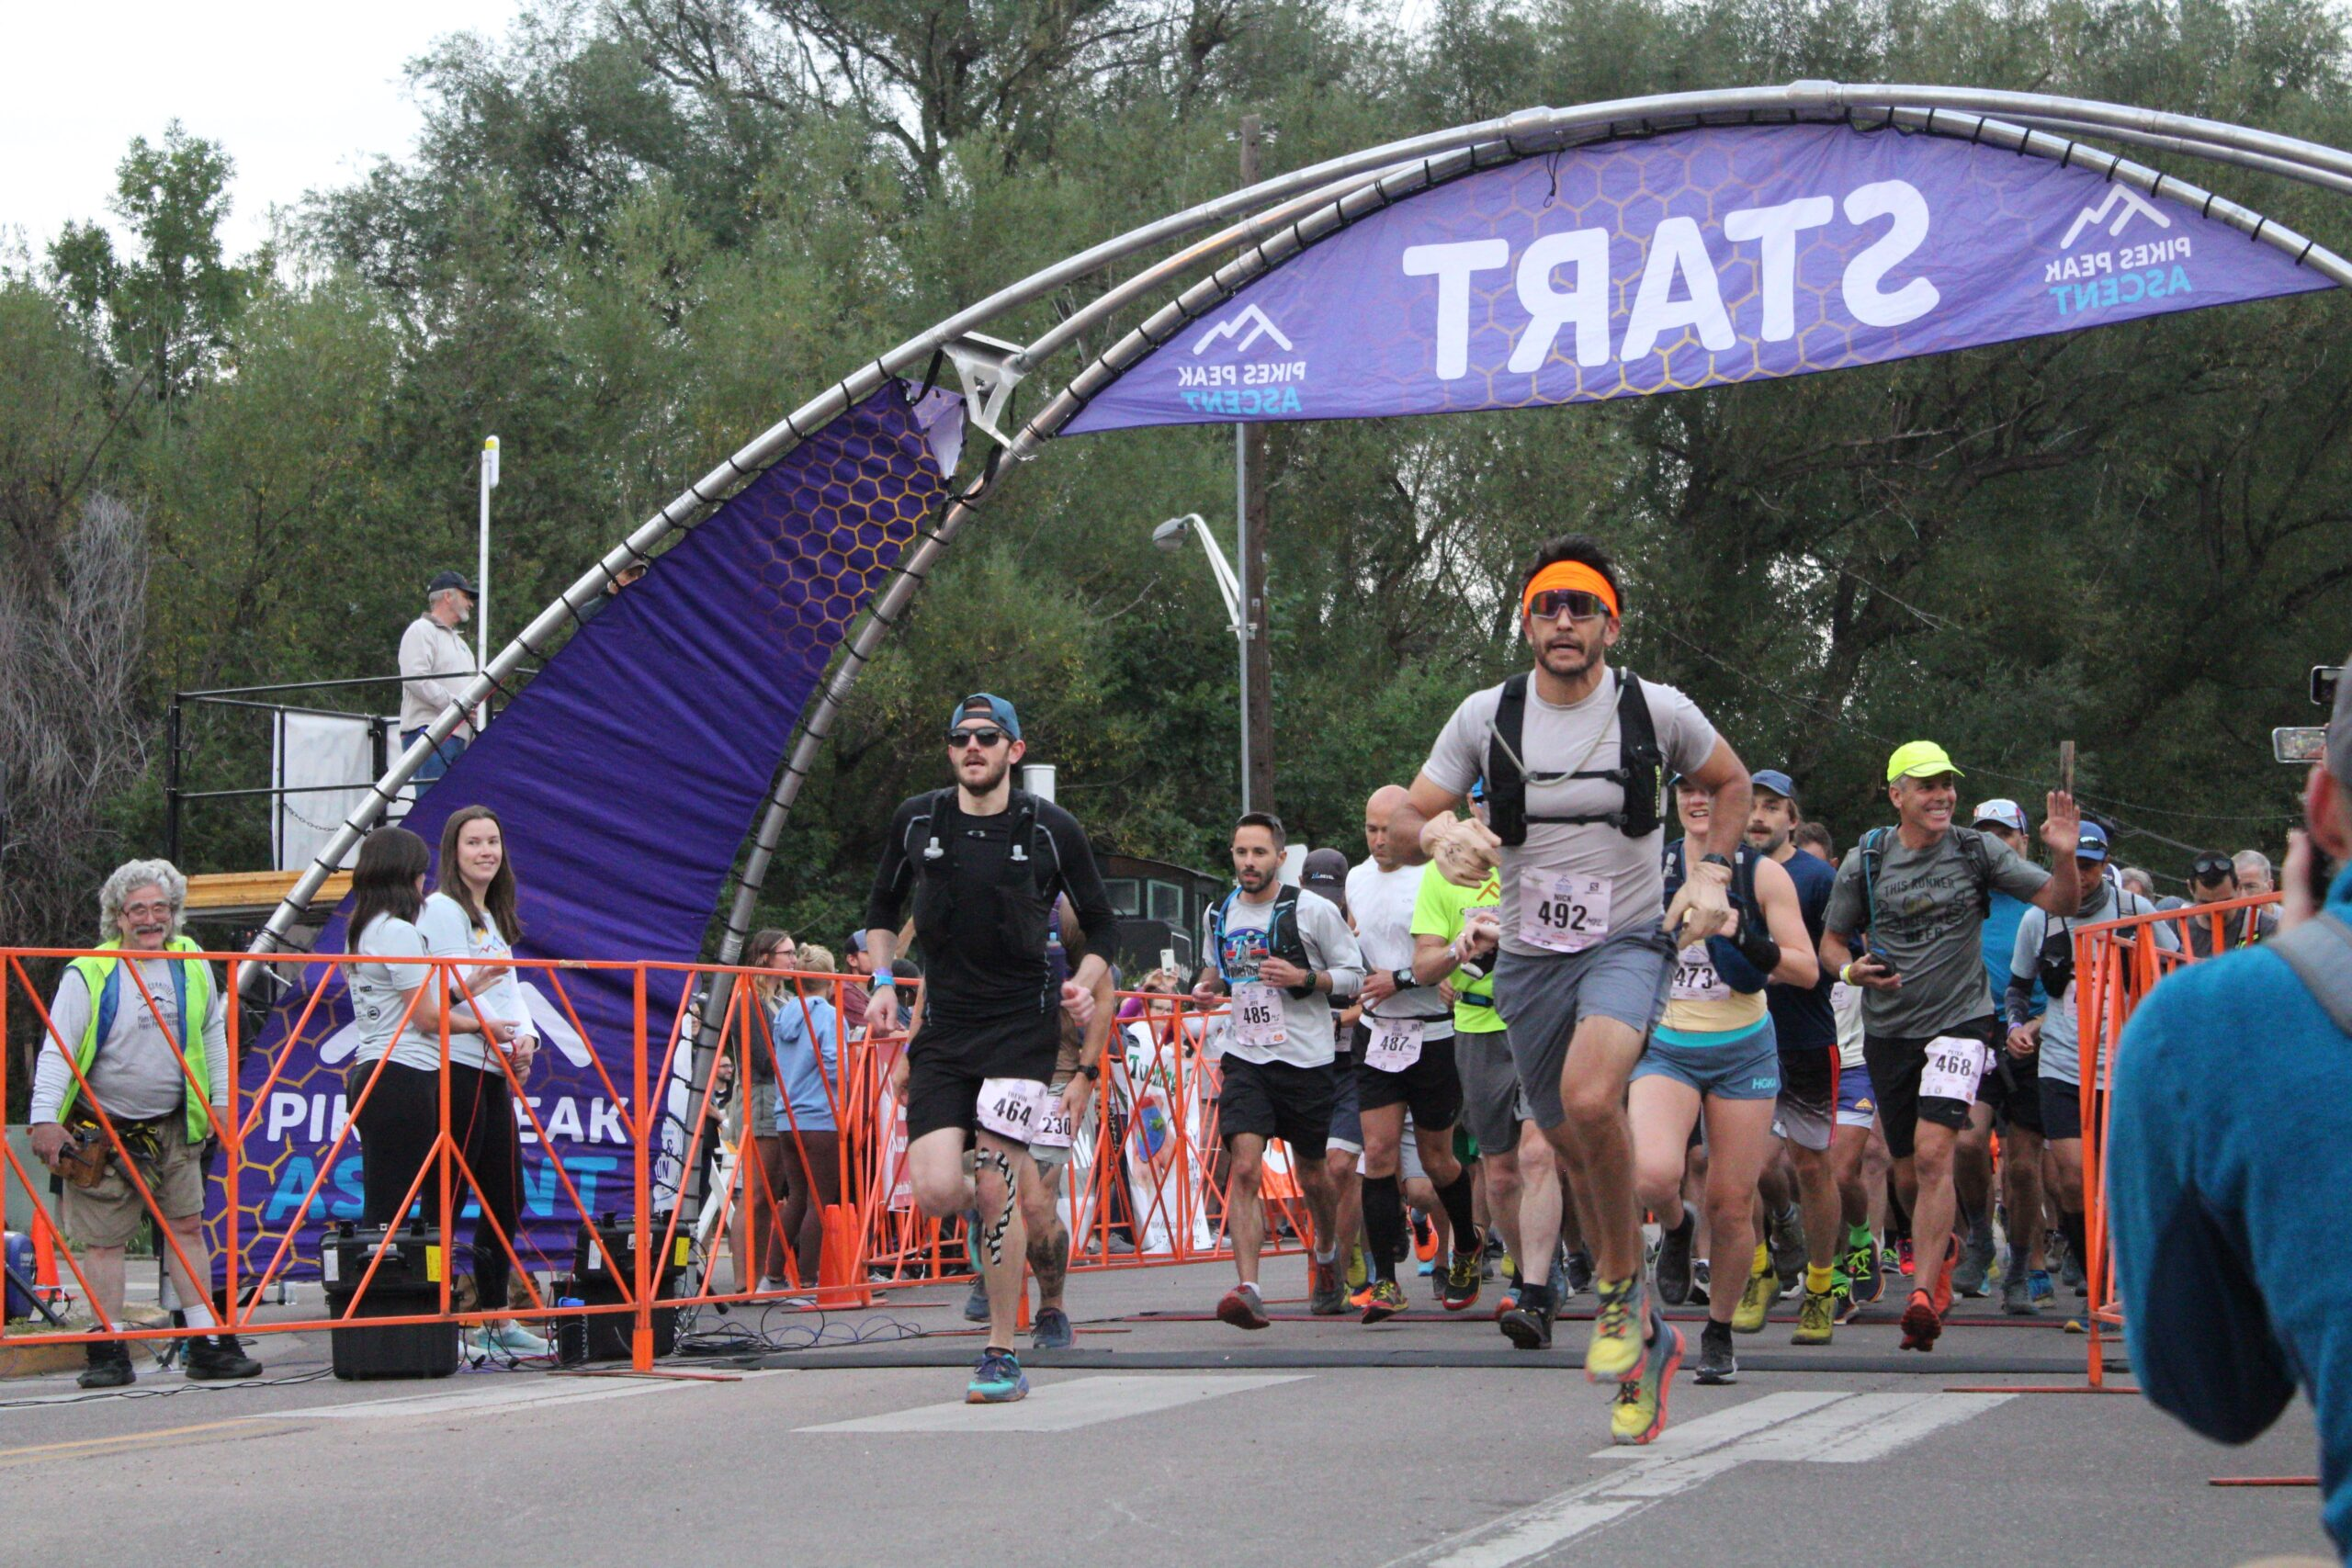 A wave of runners starts their ascent up Pikes Peak.